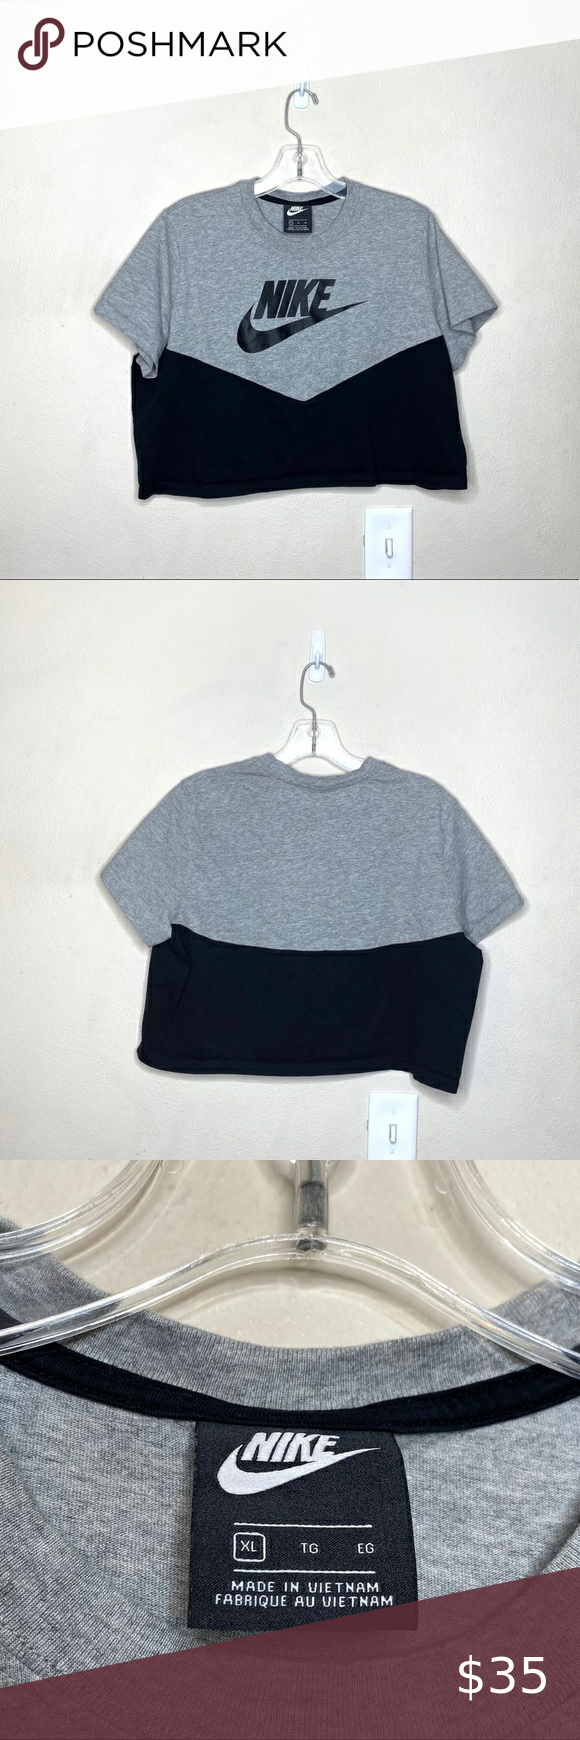 Nike Heritage Short Sleeve Crop Top Color Block Excellent Pre Owned Condition No Flaws Armpit To Armpit In 2020 Short Sleeve Cropped Top Fitted Cropped Tee Crop Tops [ 1740 x 580 Pixel ]